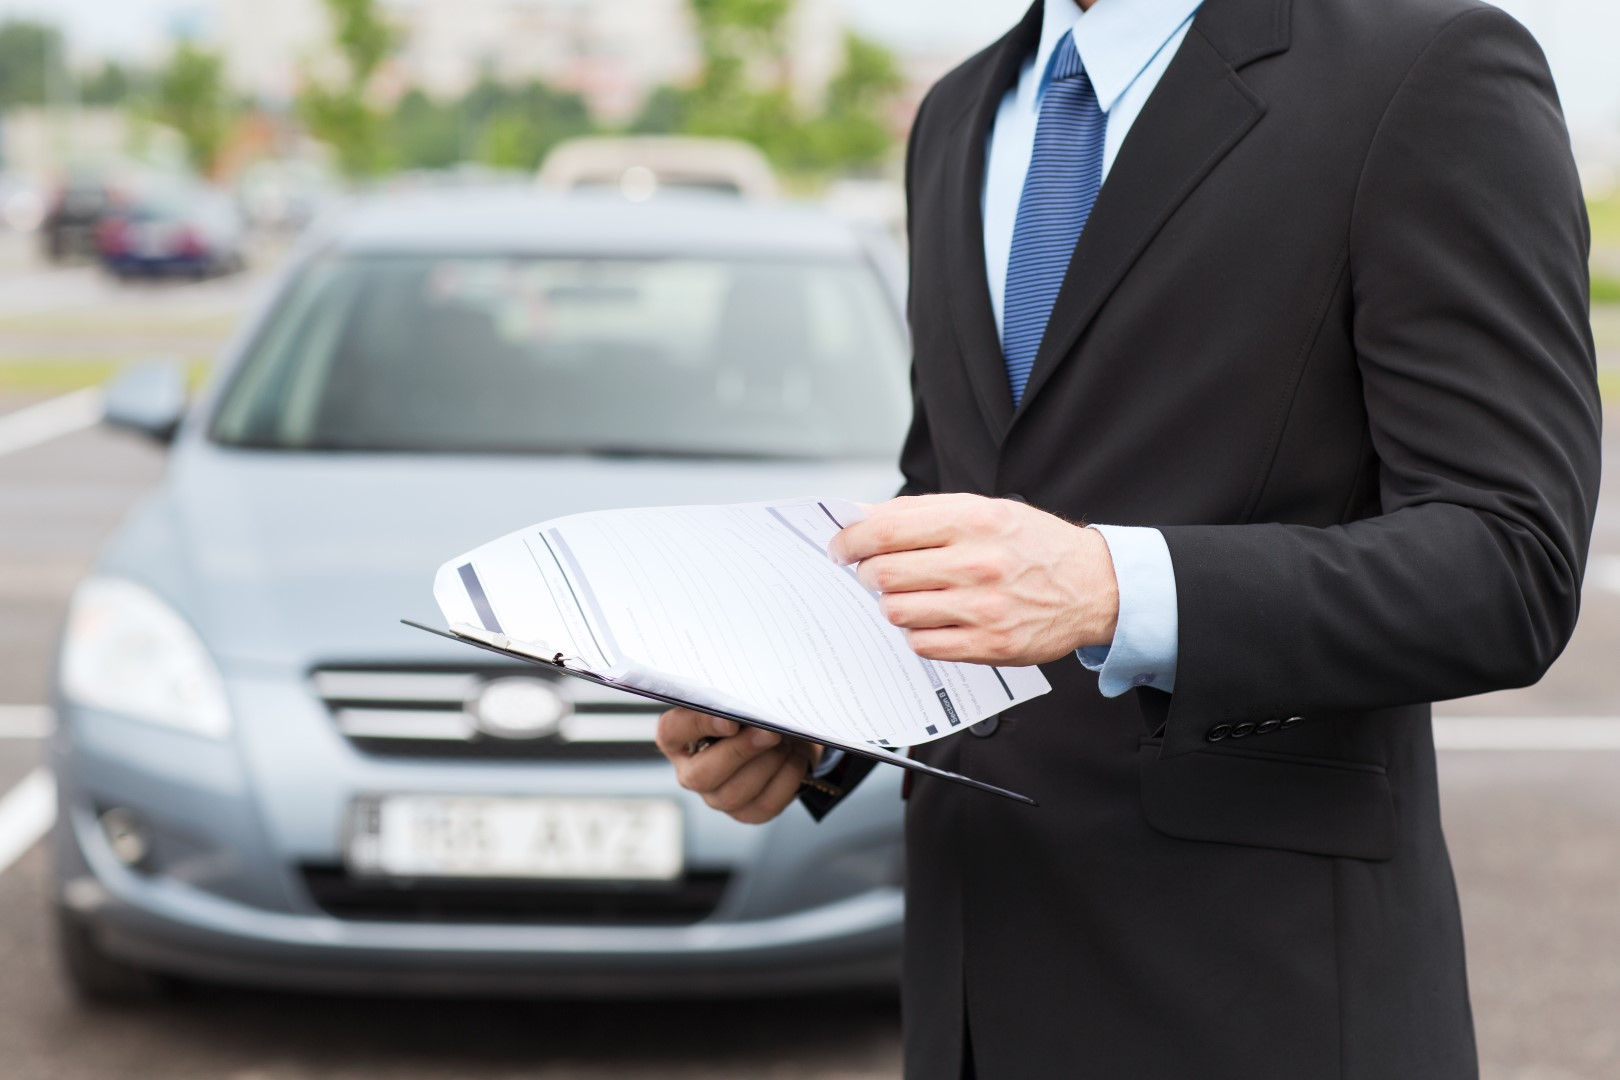 What Do Car Insurance Adjusters Look For?